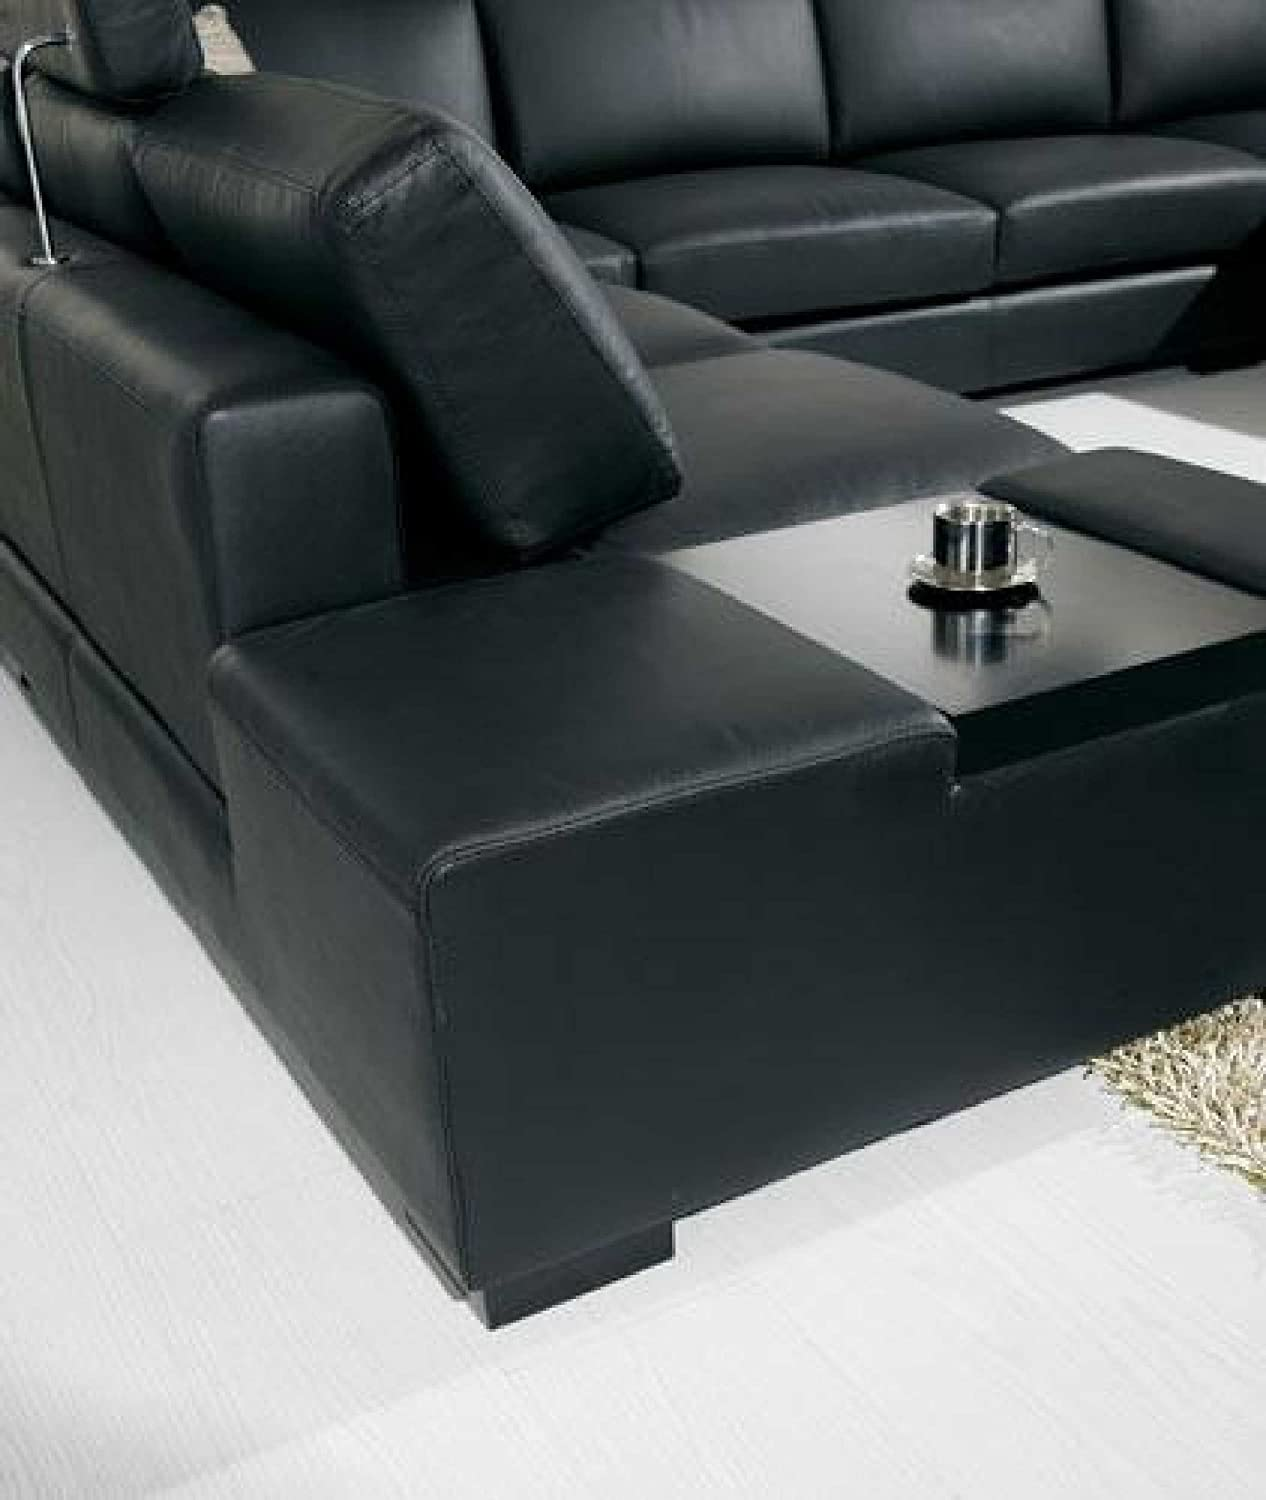 amazoncom t modern black sectional sofa with  headrests kitchen dining. amazoncom t modern black sectional sofa with  headrests